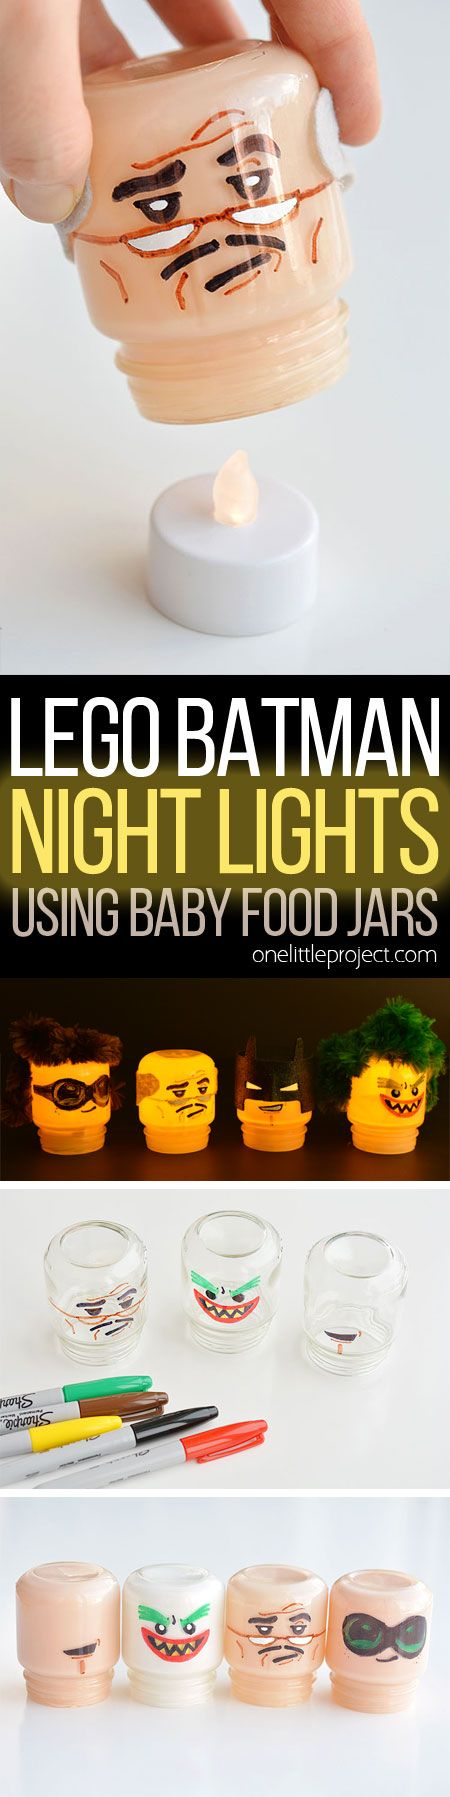 Baby food jars are the exact same shape as LEGO heads!!! Just draw on the faces and paint the jars! These Lego Batman night lights are SO CUTE! What a fun little project!